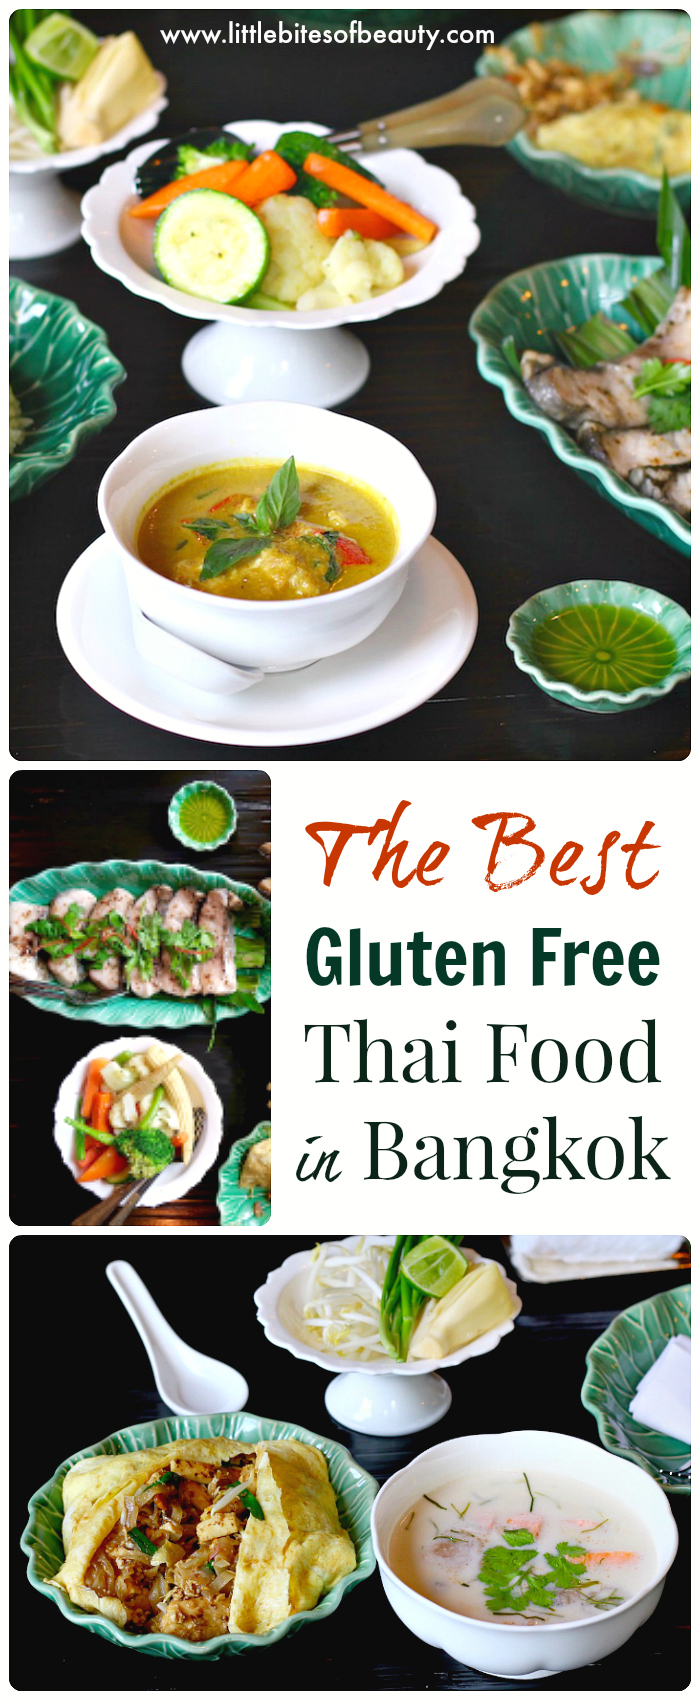 The Best Gluten Free Thai Food in Bangkok